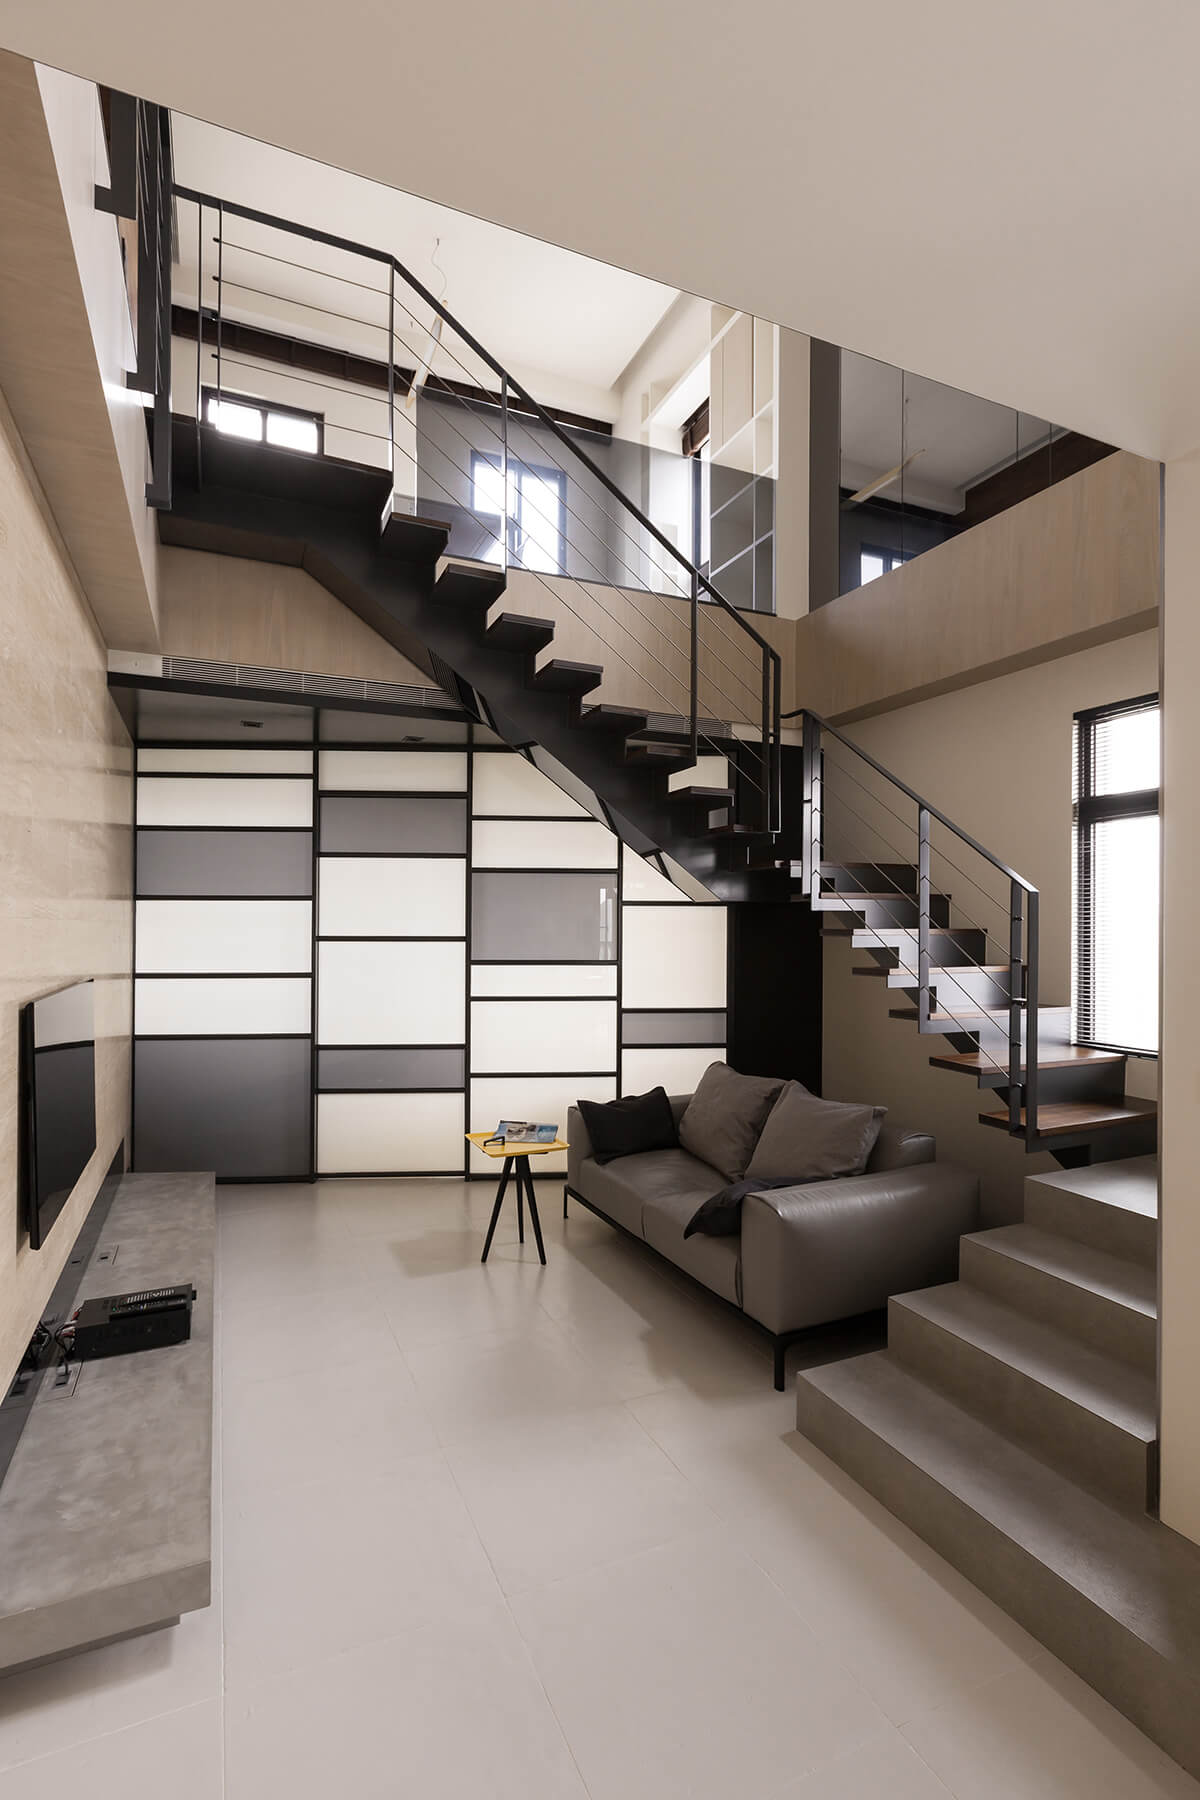 The central living room features a single leather wrapped contemporary sofa and tripod table, tucked beneath a metal and hardwood open-design staircase.